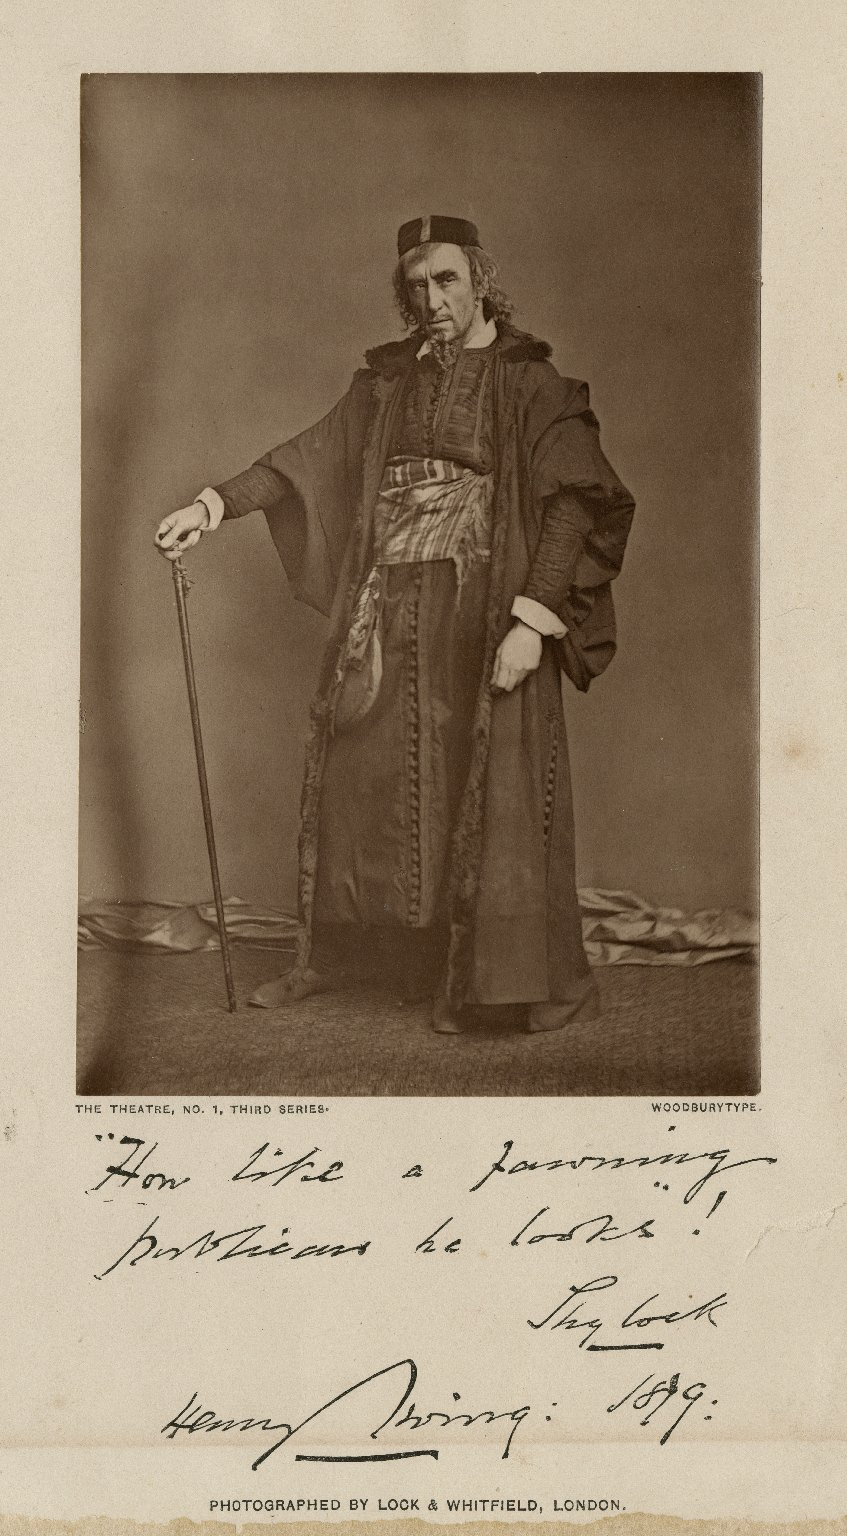 Henry Irving [as Shylock in Shakespeare's Merchant of Venice] [graphic] / photographed by Lock & Whitfield.